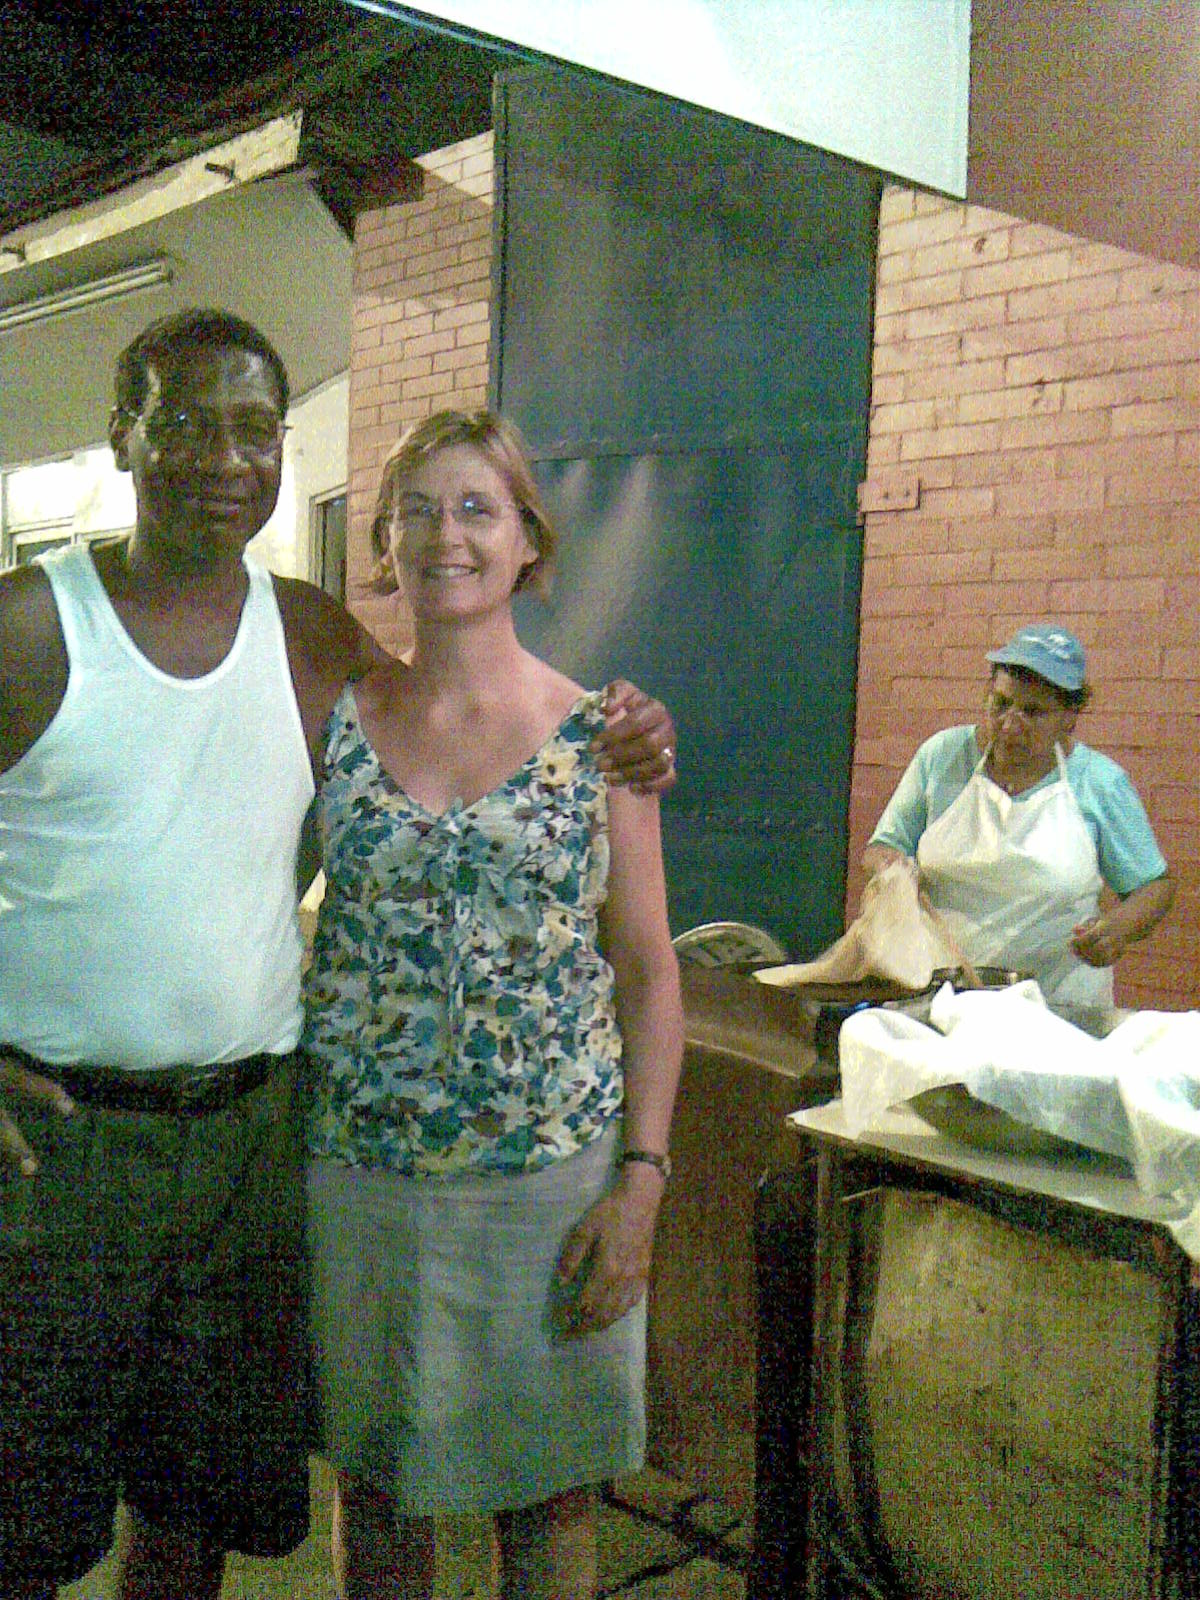 Getting hot roti in St. James